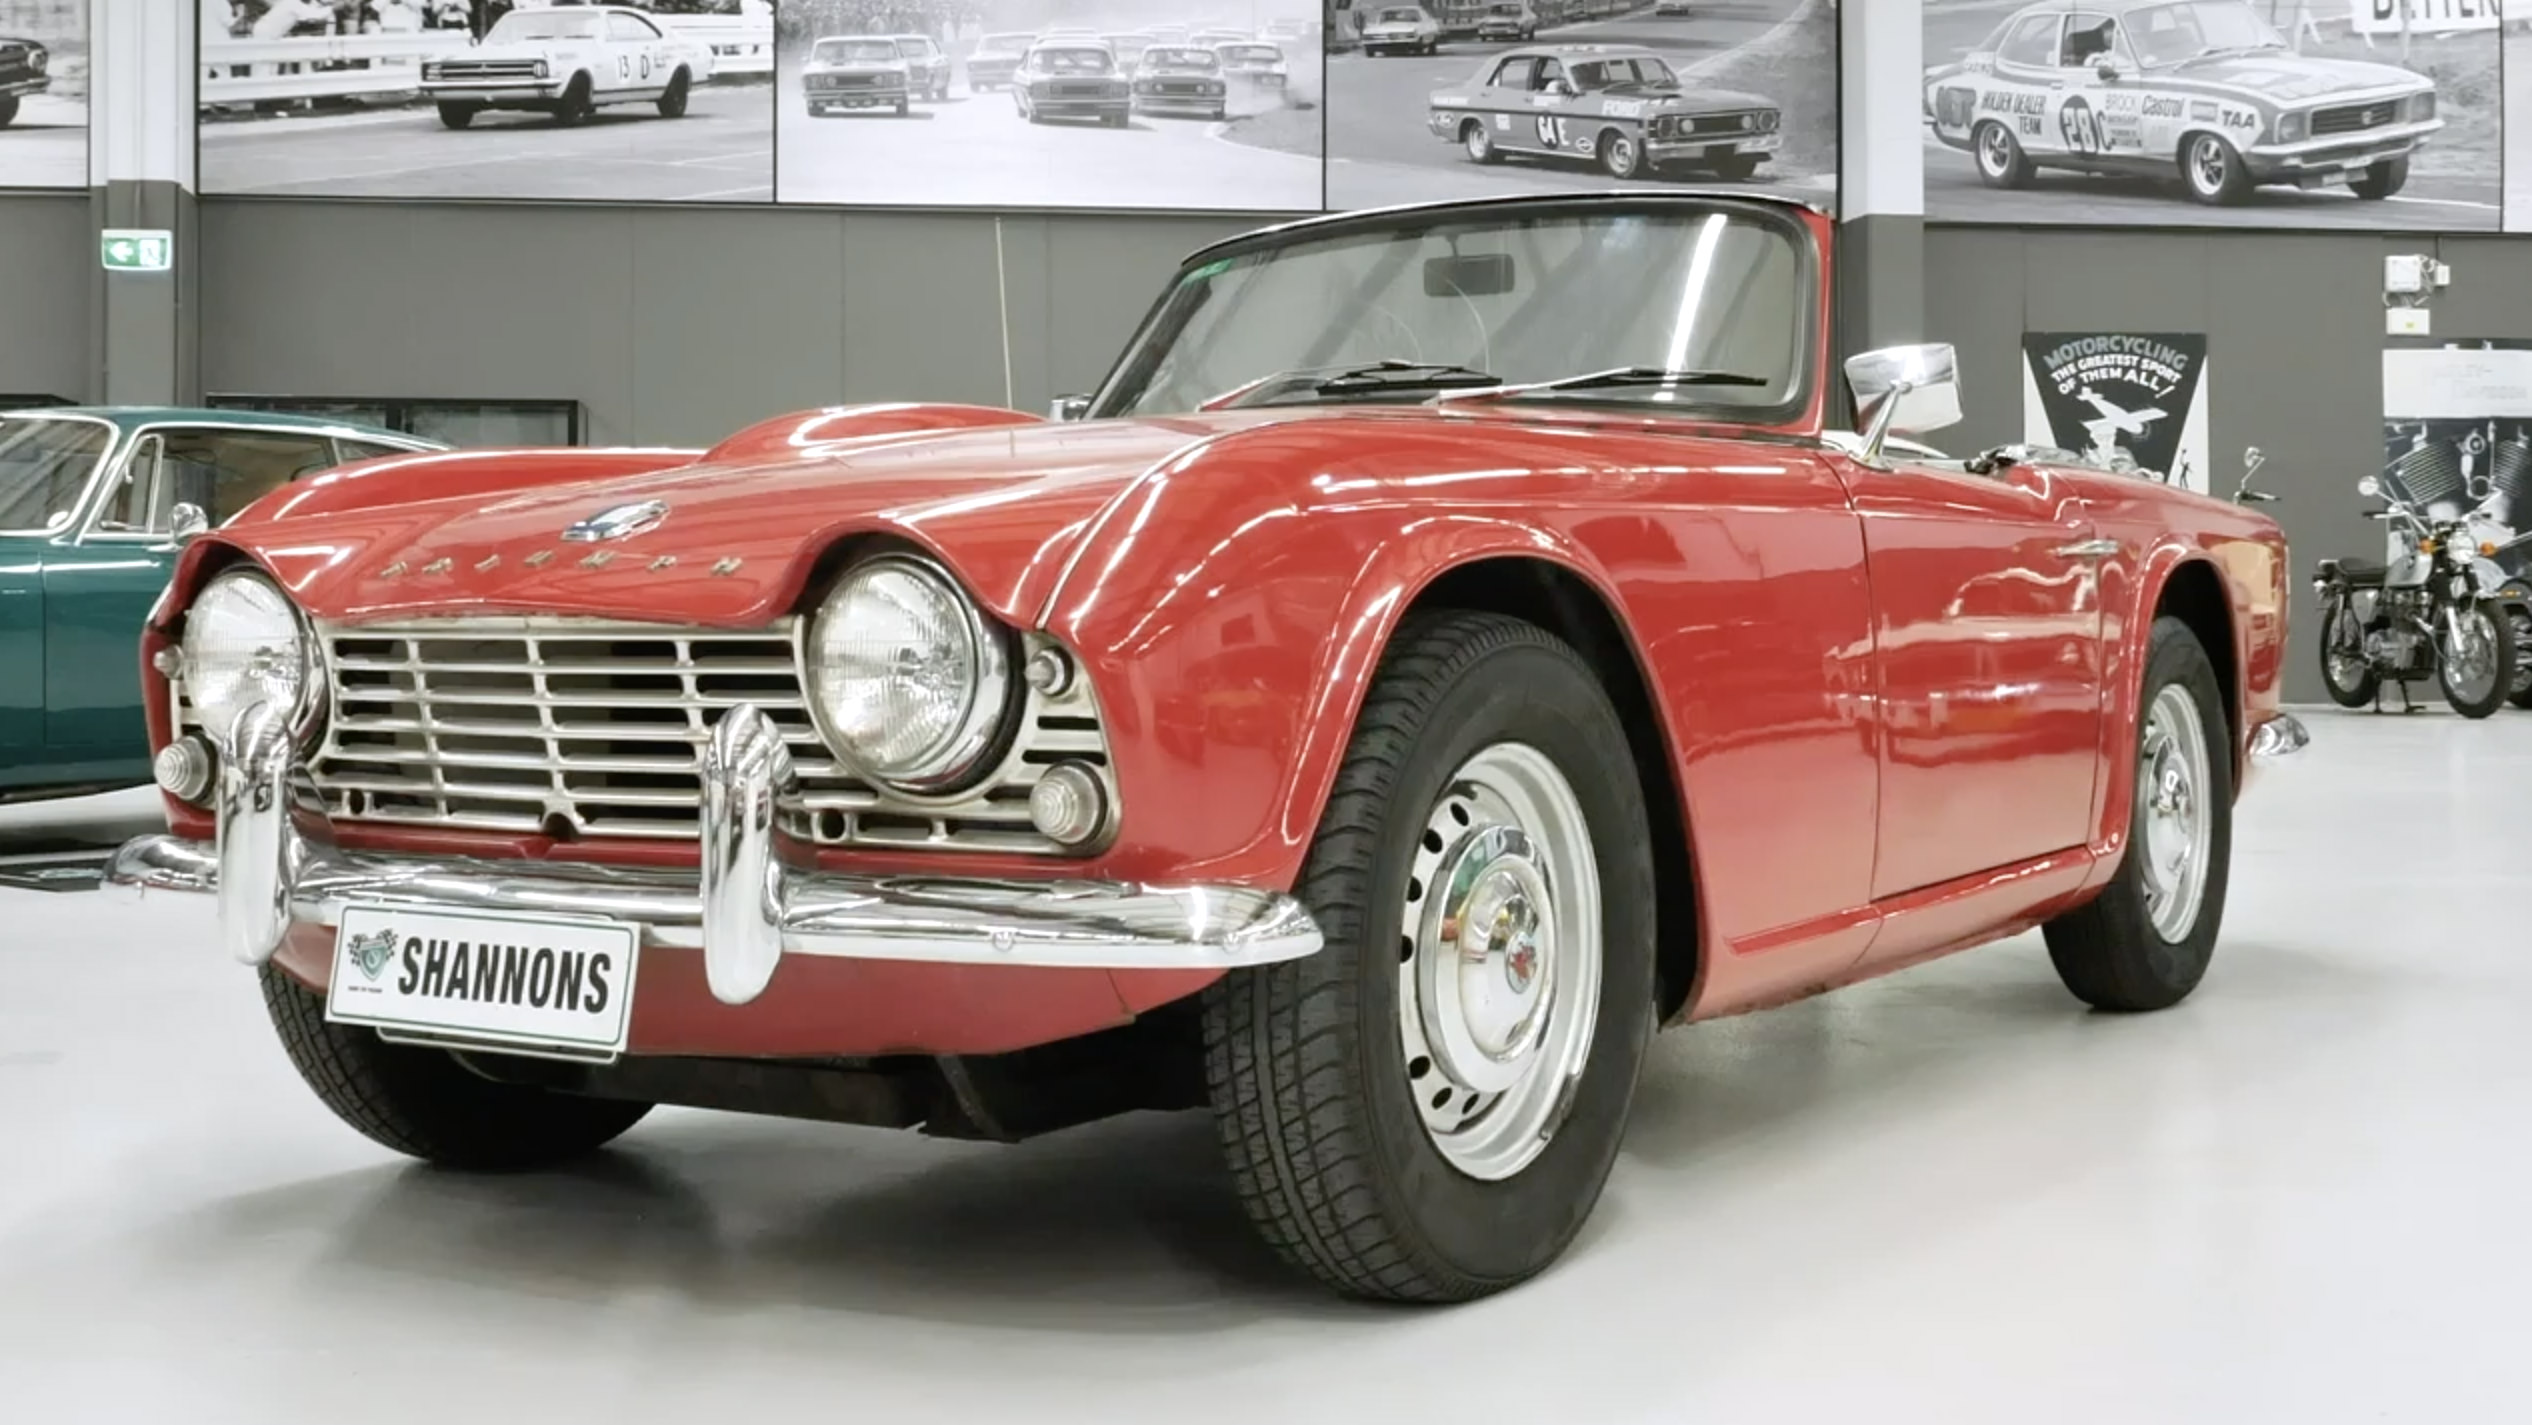 1961 Triumph TR4 Roadster - 2021 Shannons Summer Timed Online Auction